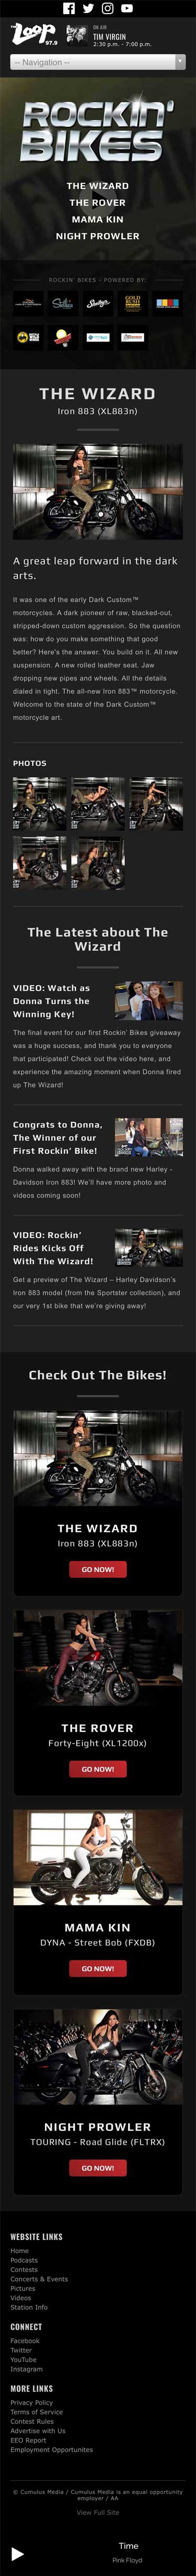 Rockin' Bikes - The Wizard Page - iPhone View